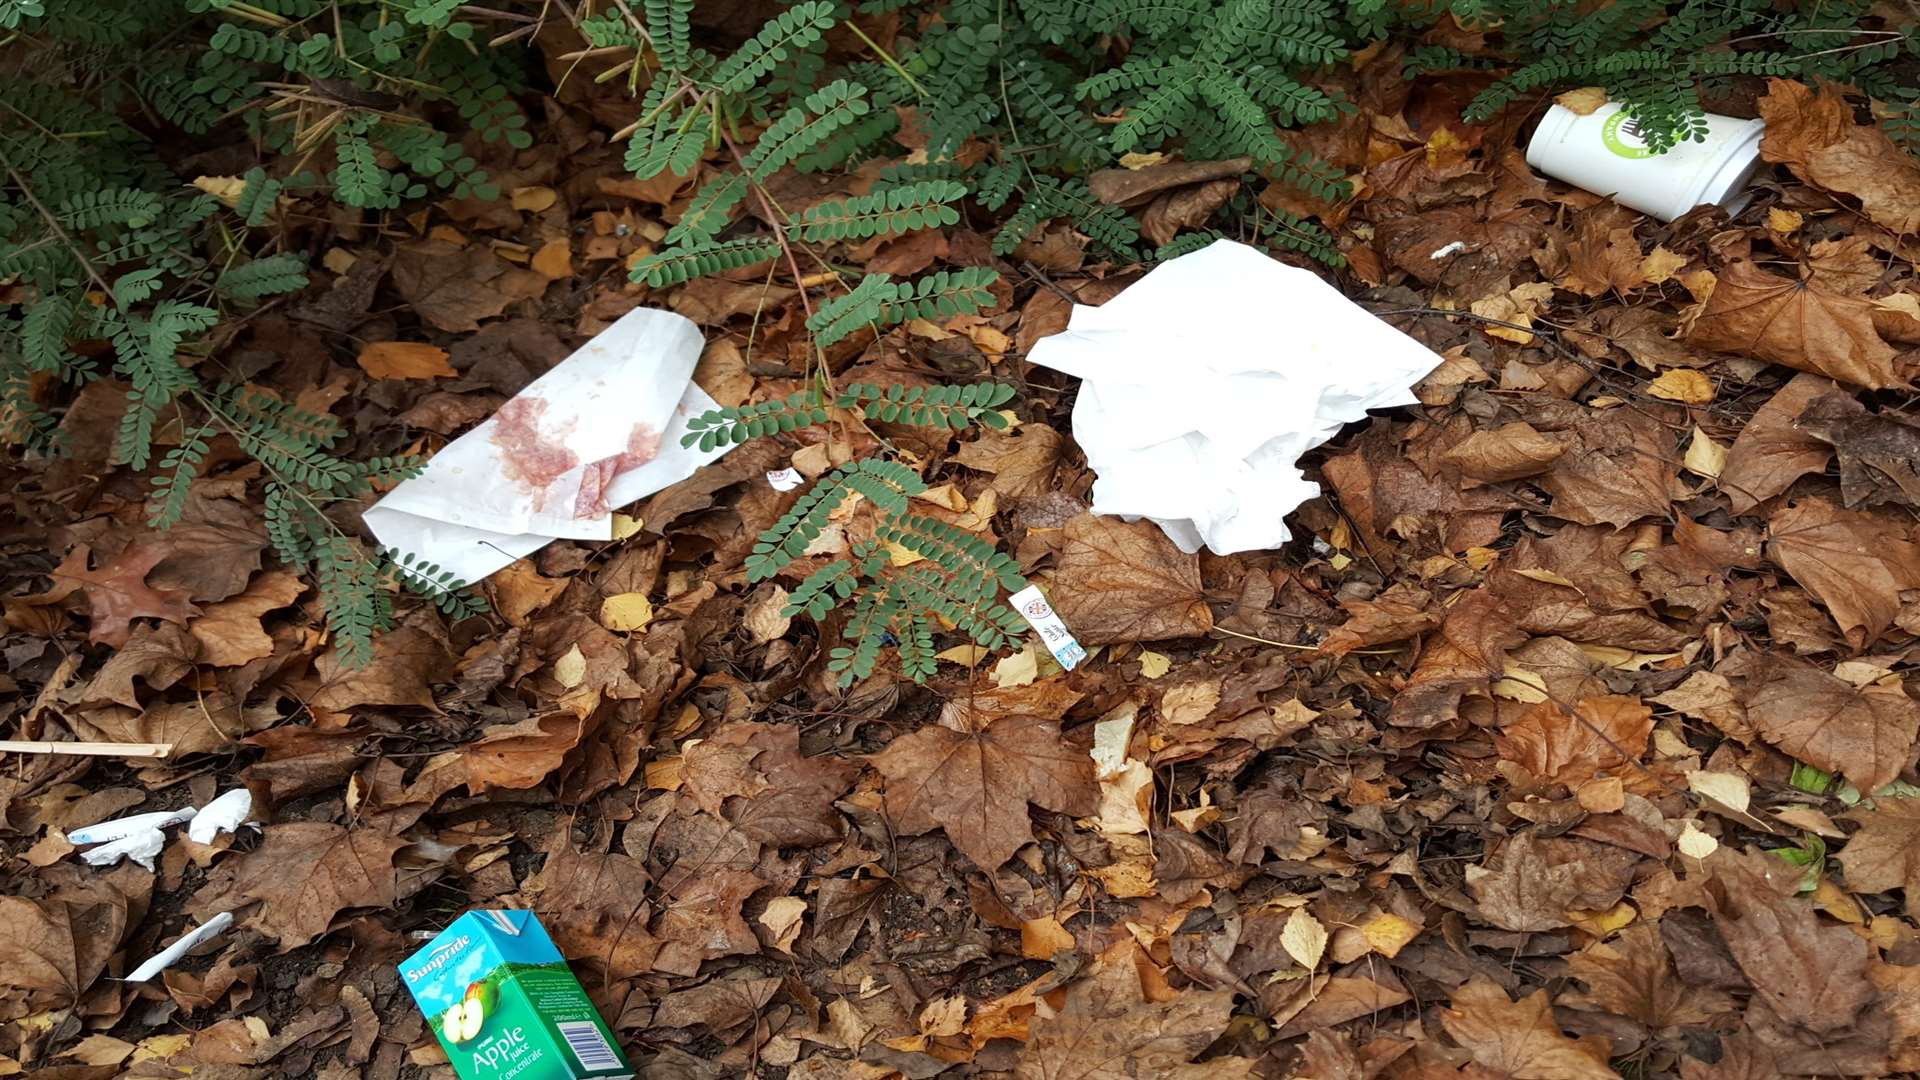 Rubbish strewn around Memorial Gardens